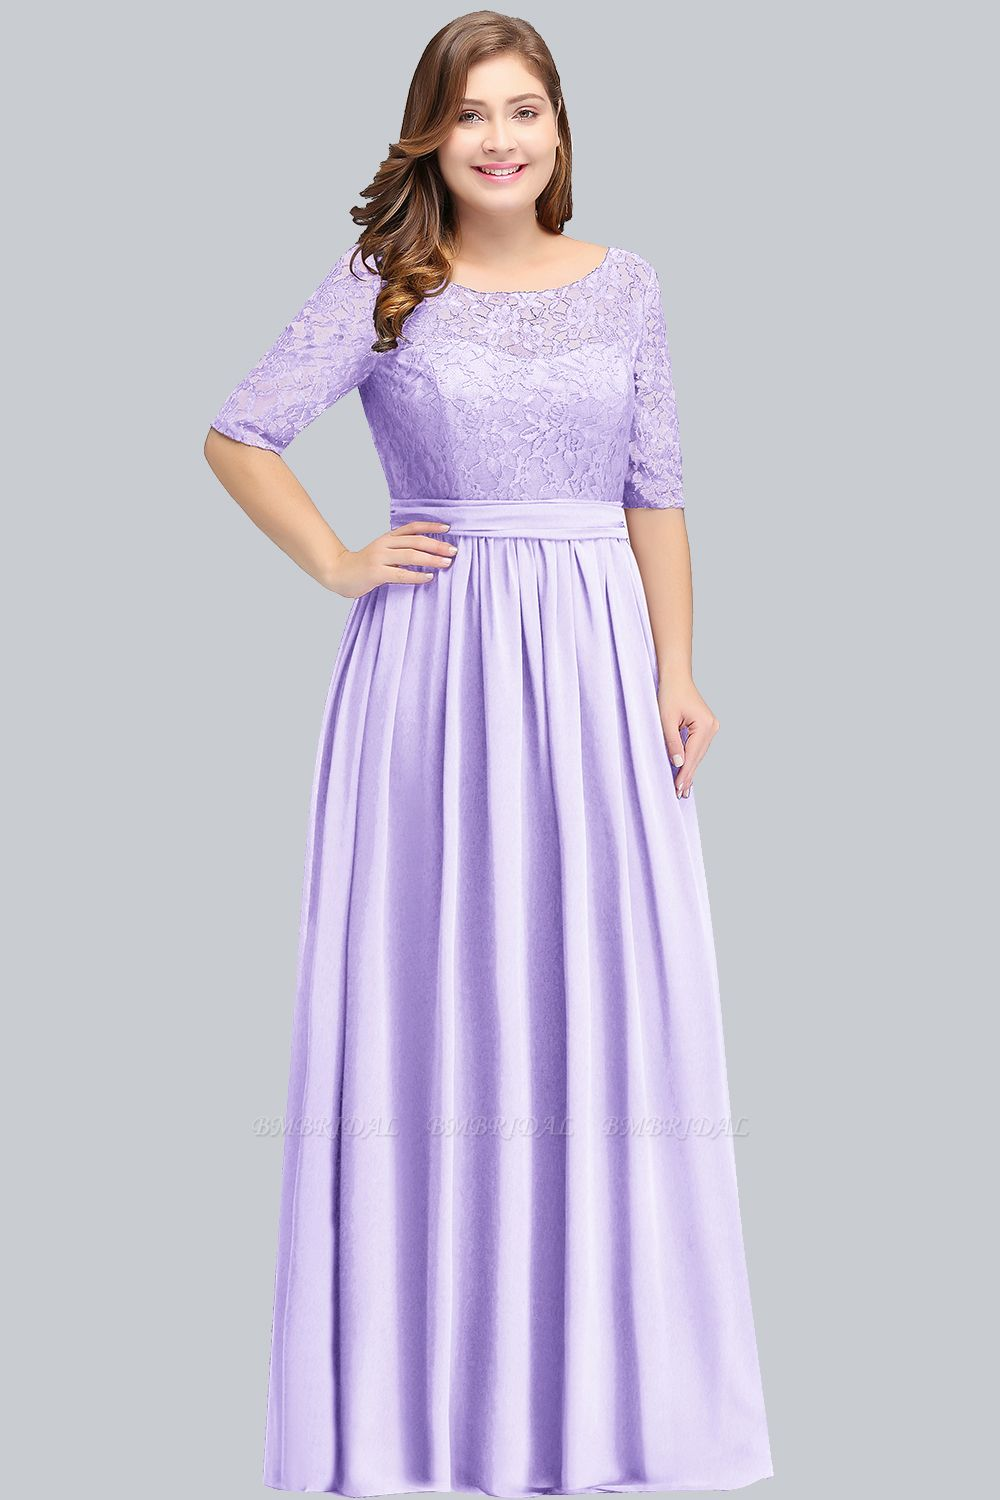 Plus Size Elegant Half-Sleeves Lace Bridesmaid Dresses with Bow